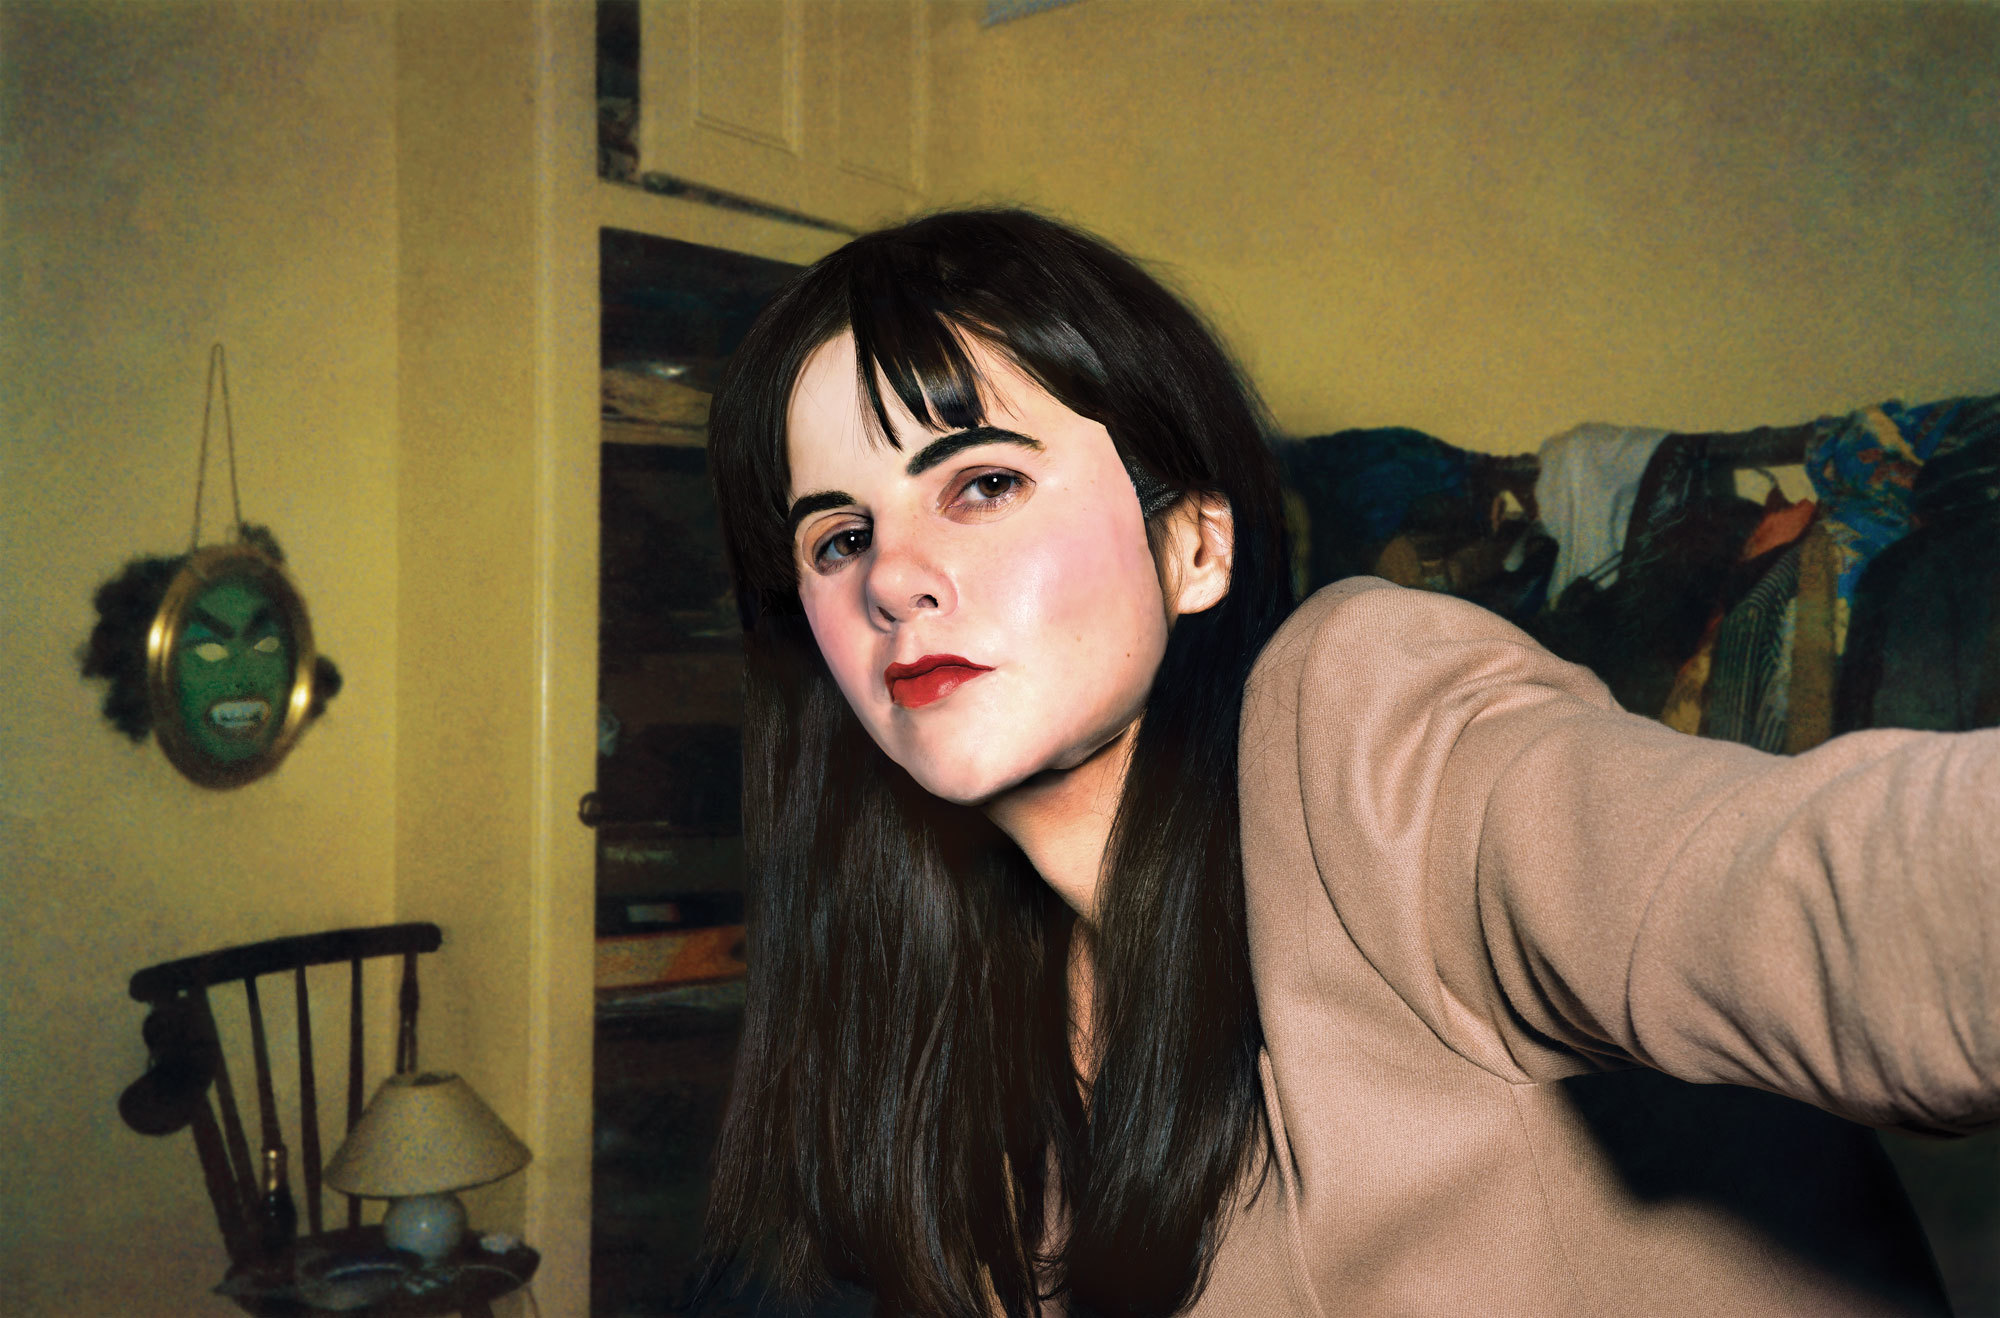 photographer and video artist gillian wearing takes a self